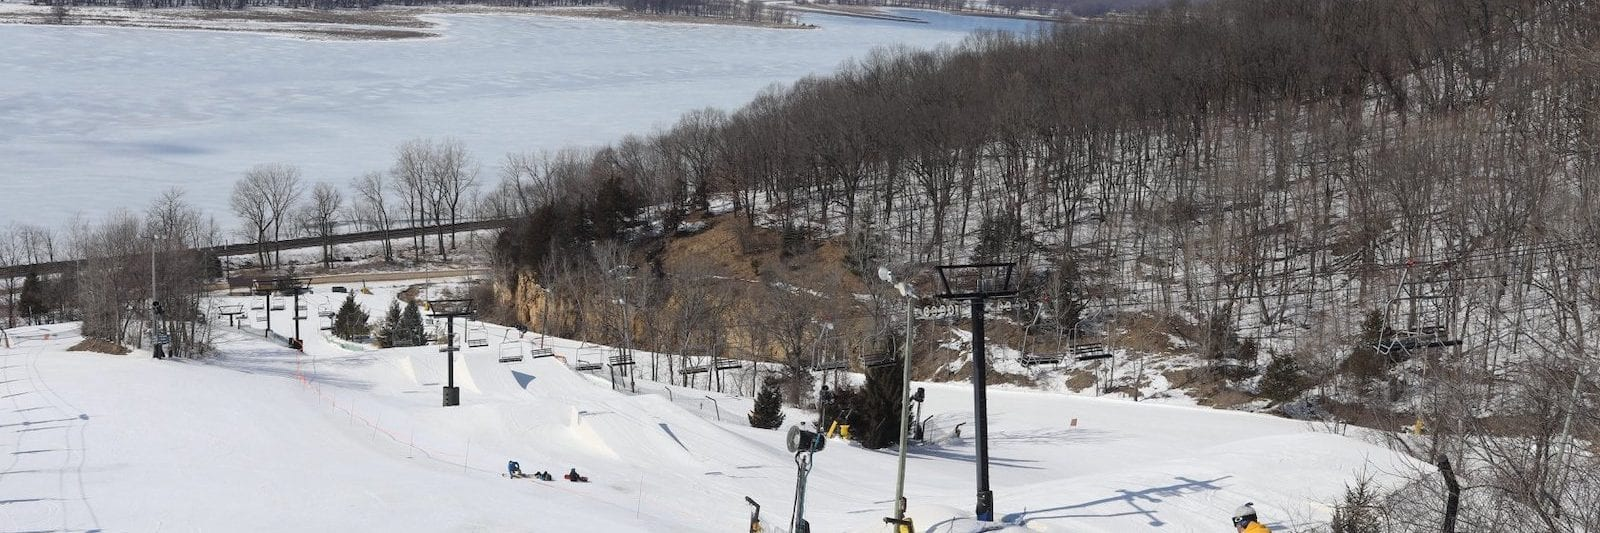 Chestnut Mountain Resort, Illinois